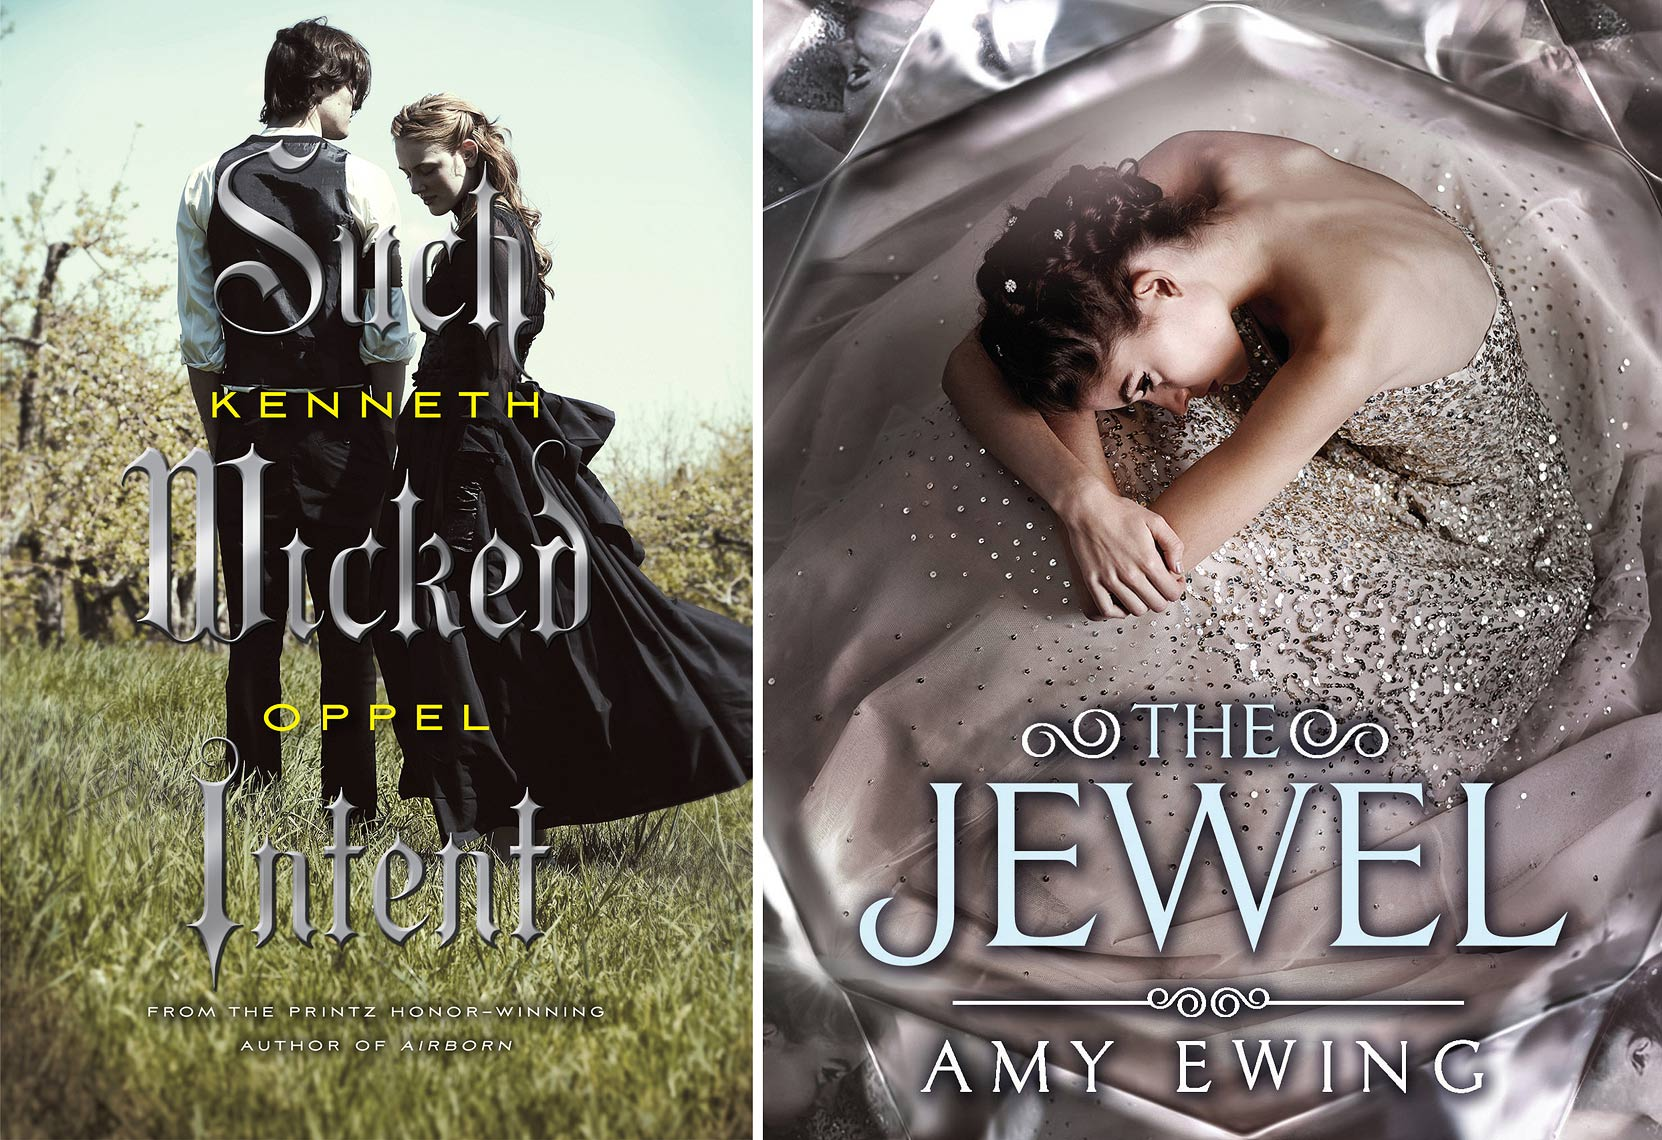 Such Wicked Intent - Kenneth Oppel - Jewel - Amy Ewing | Michael Frost Photography